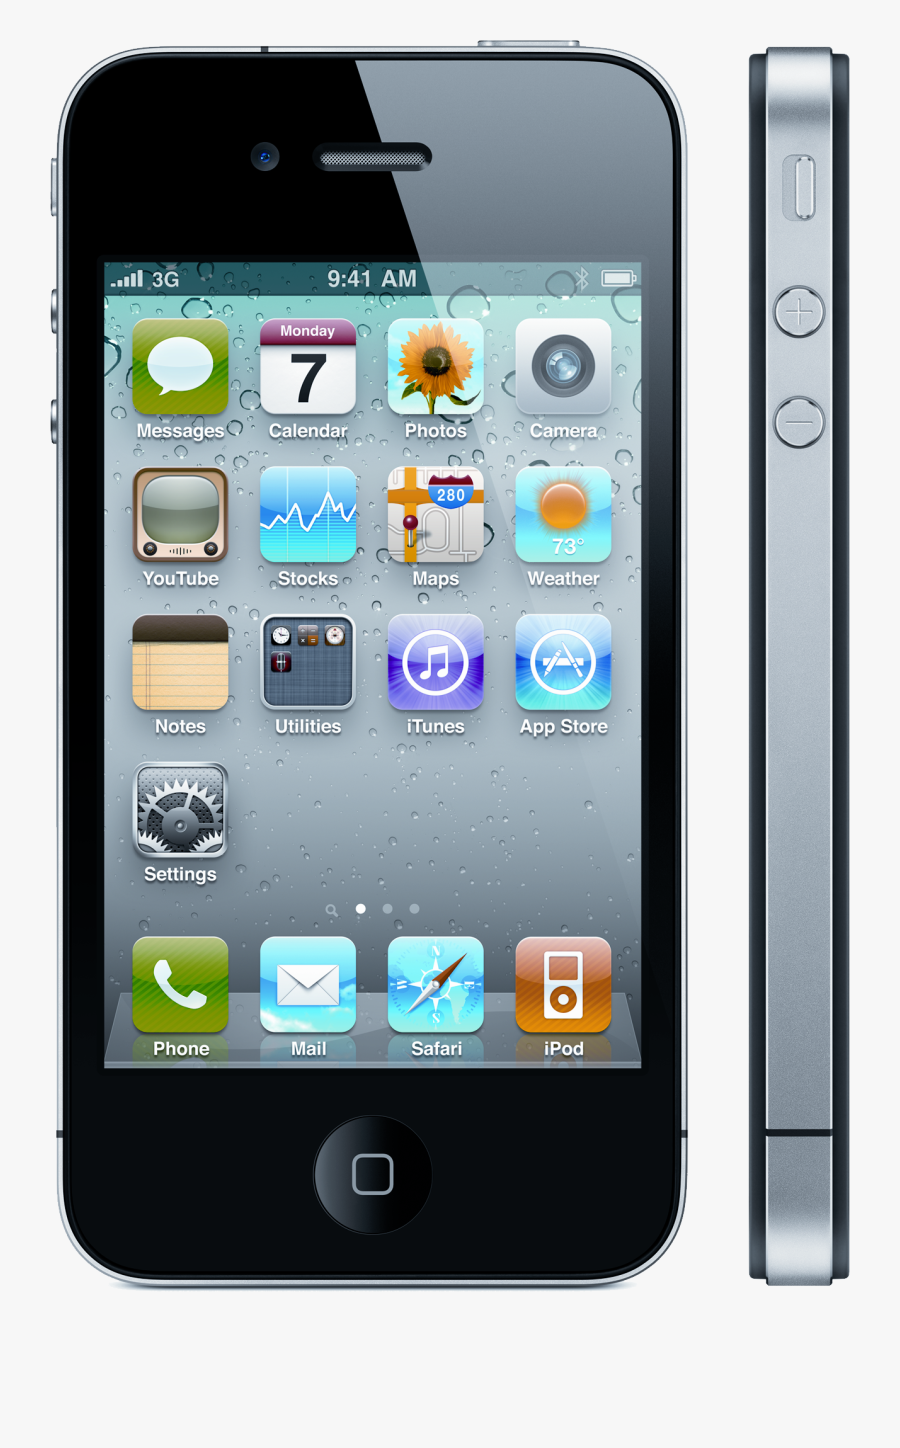 Smartphone Png Image - Apple Iphone 4, Transparent Clipart